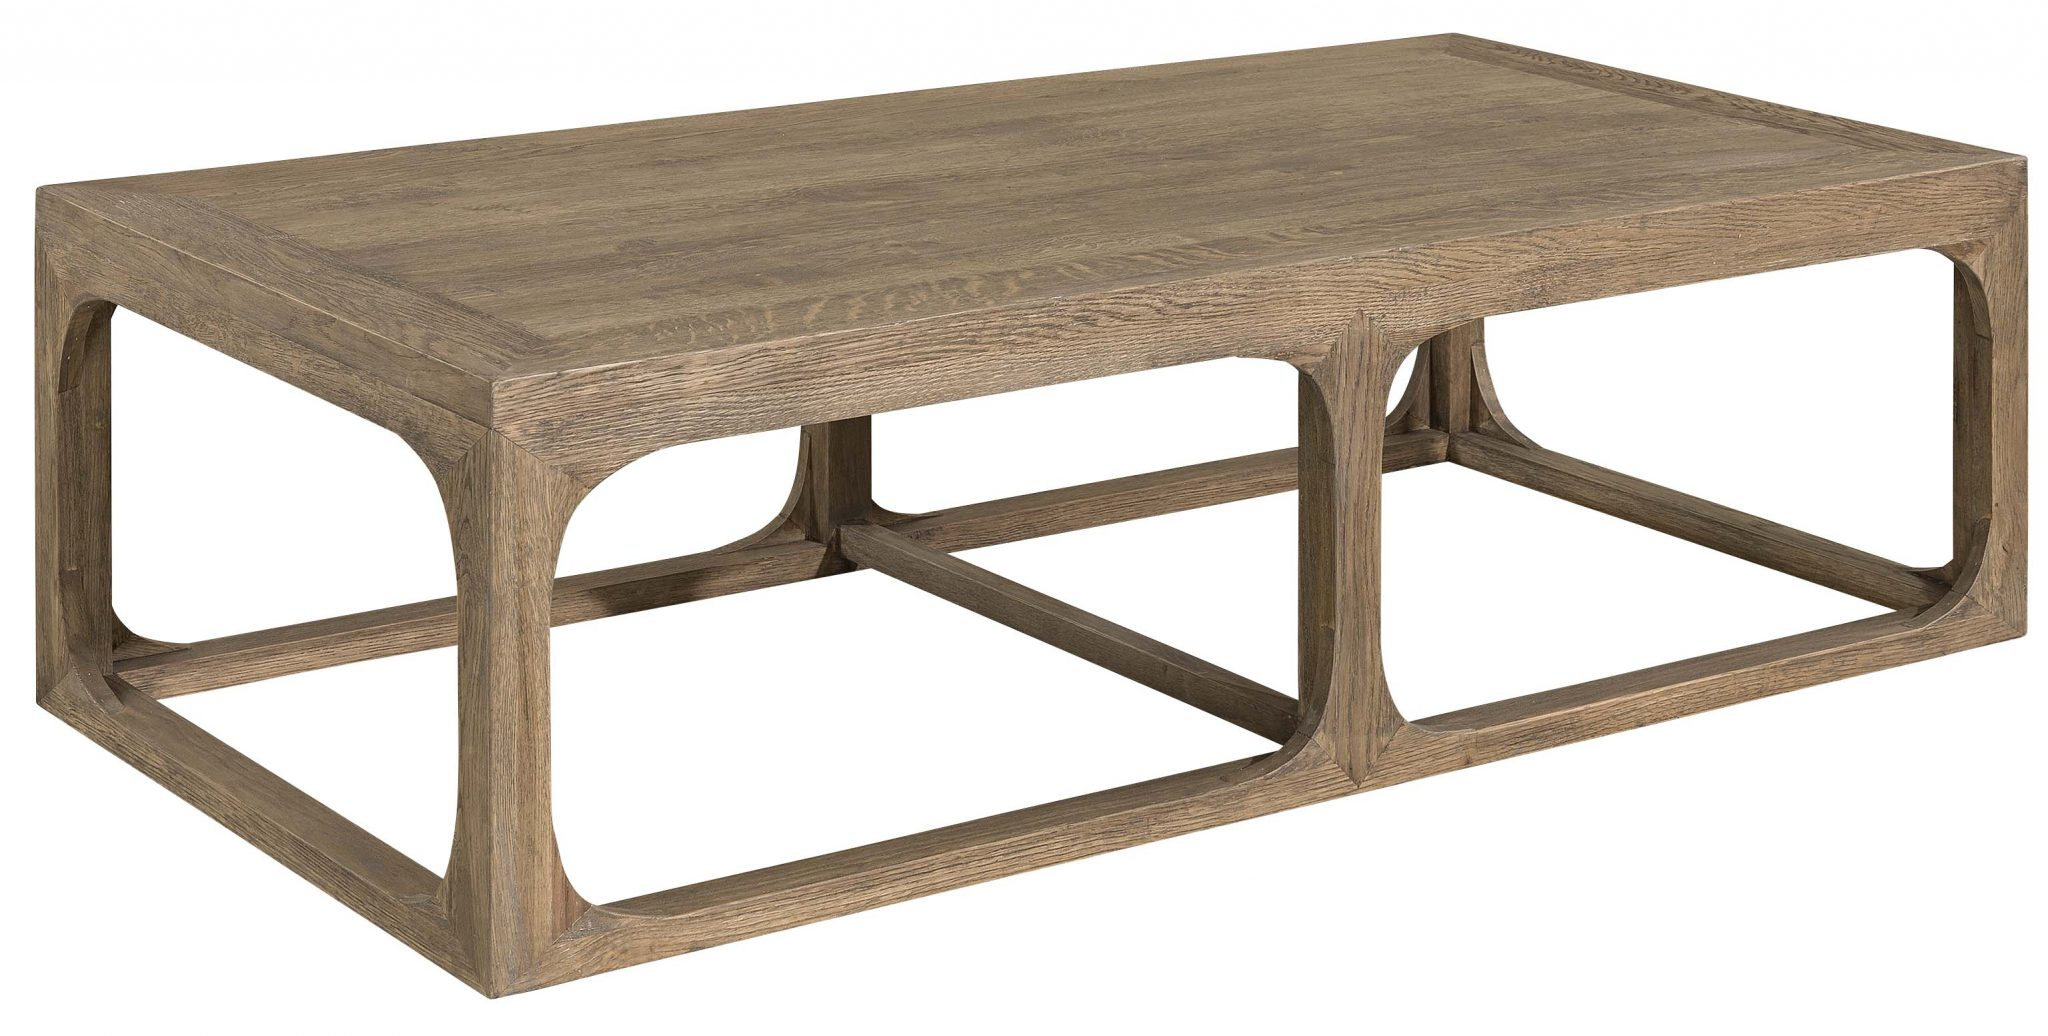 Denver Coffee Table Artwood : 06 62618 from artwoodfurniture.nz size 3071 x 1553 jpeg 400kB